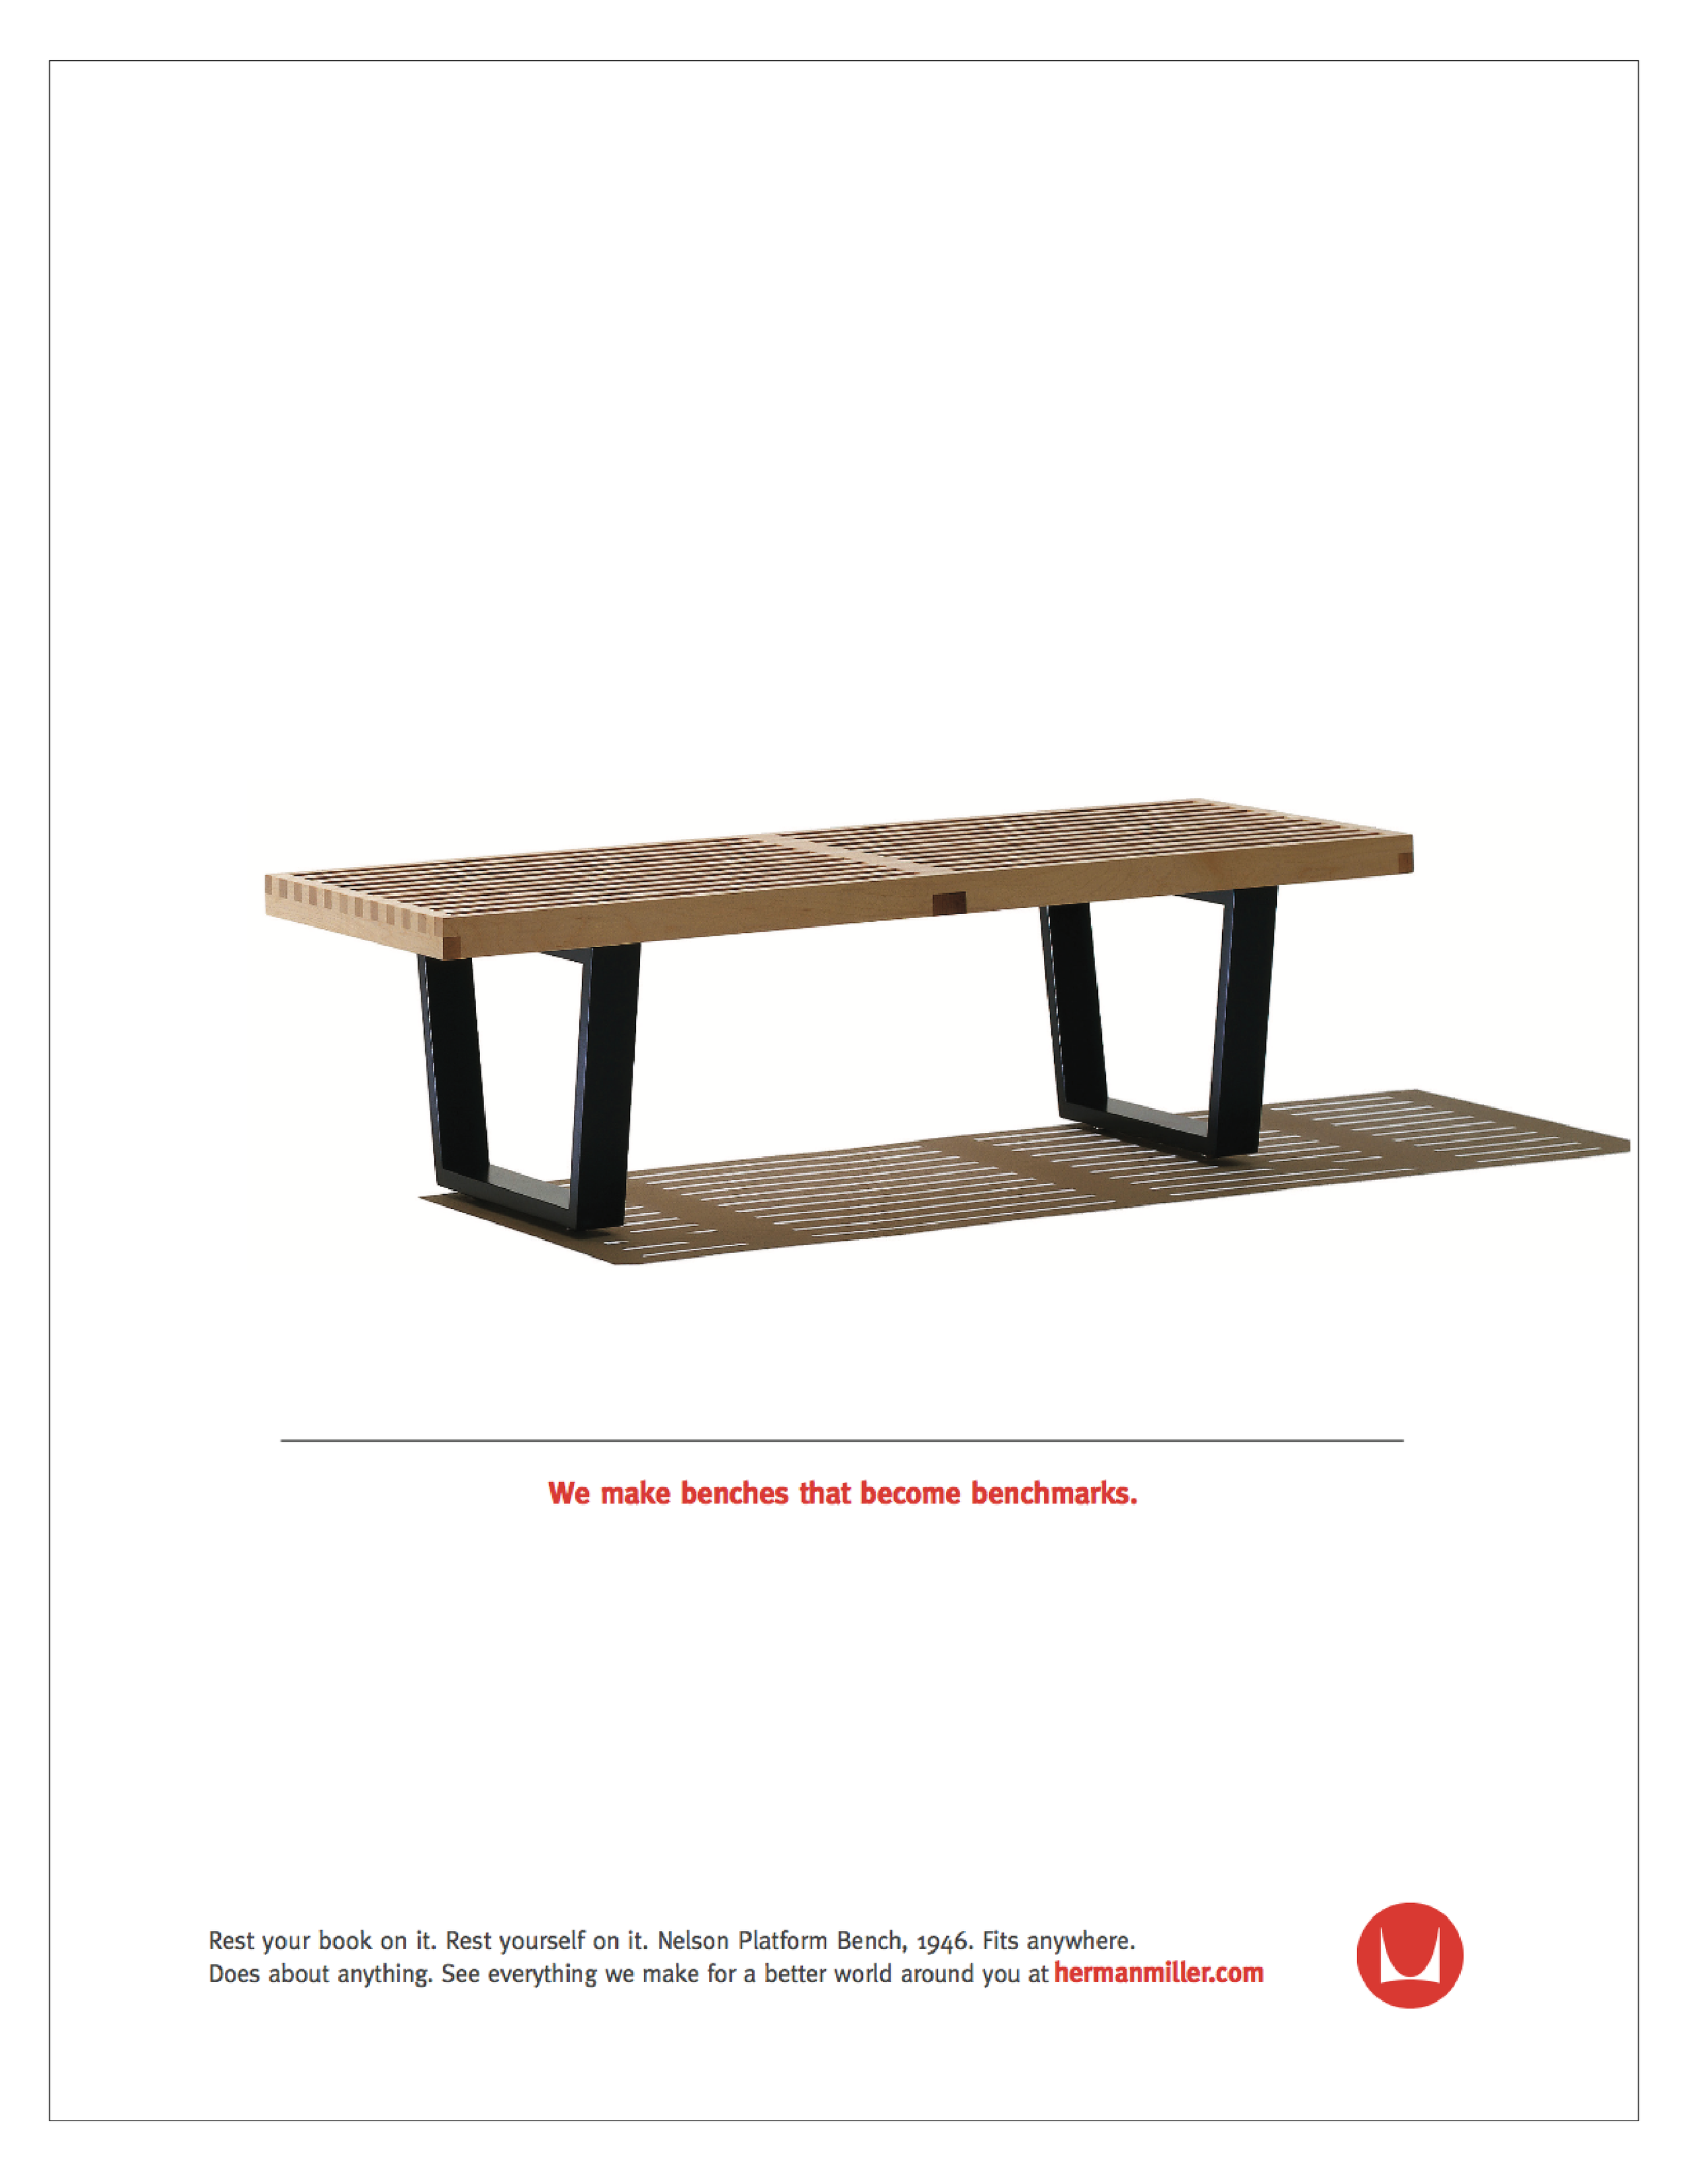 Bench-01.png